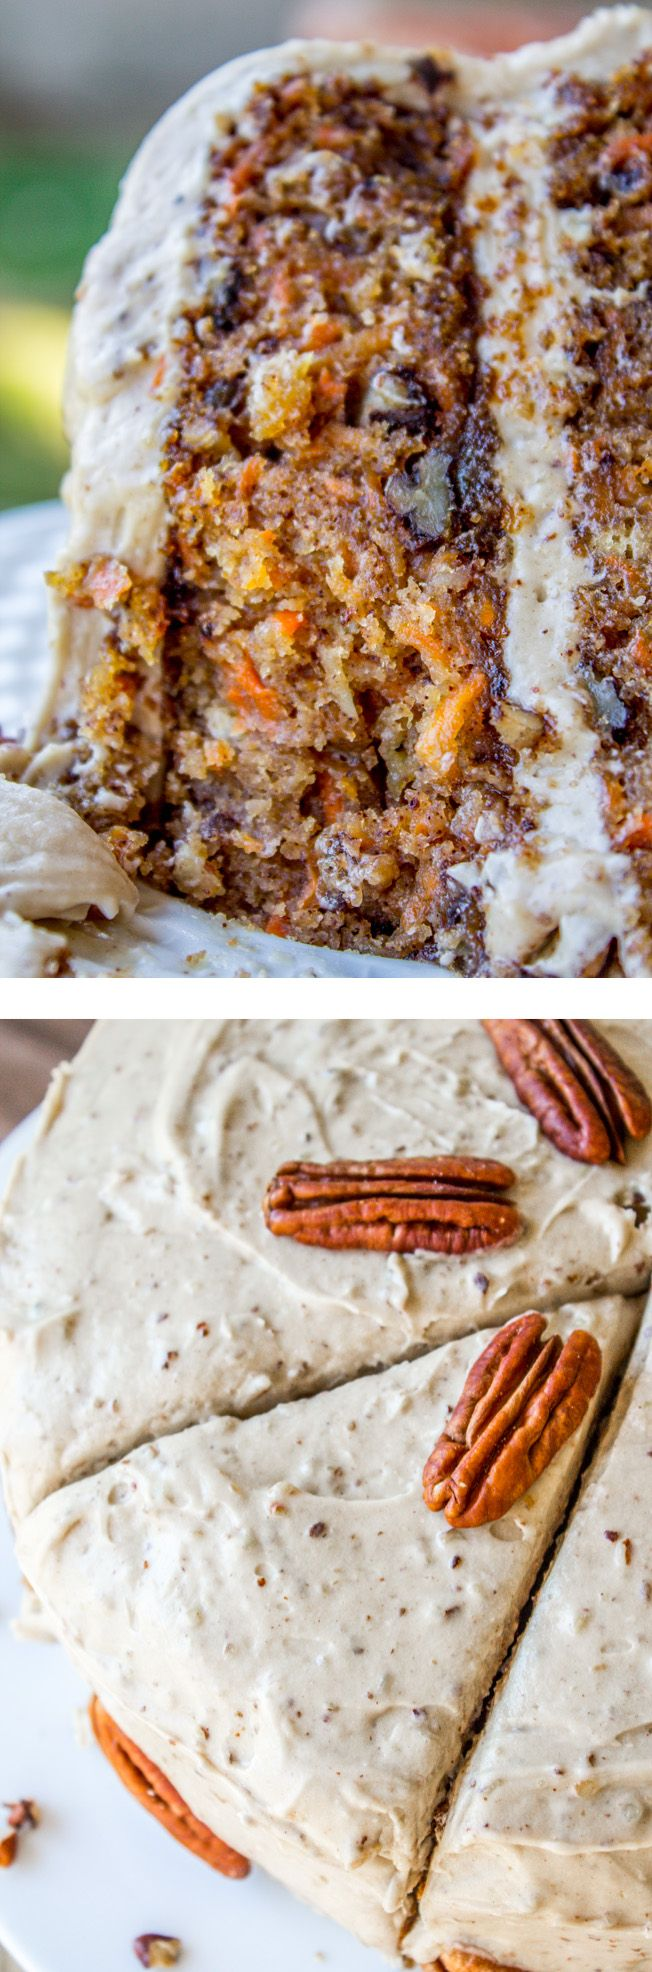 This irresistible carrot cake is covered with a thick layer of cream cheese maple pecan frosting! Crushed pineapple makes it super moist. from The Food Charlatan.